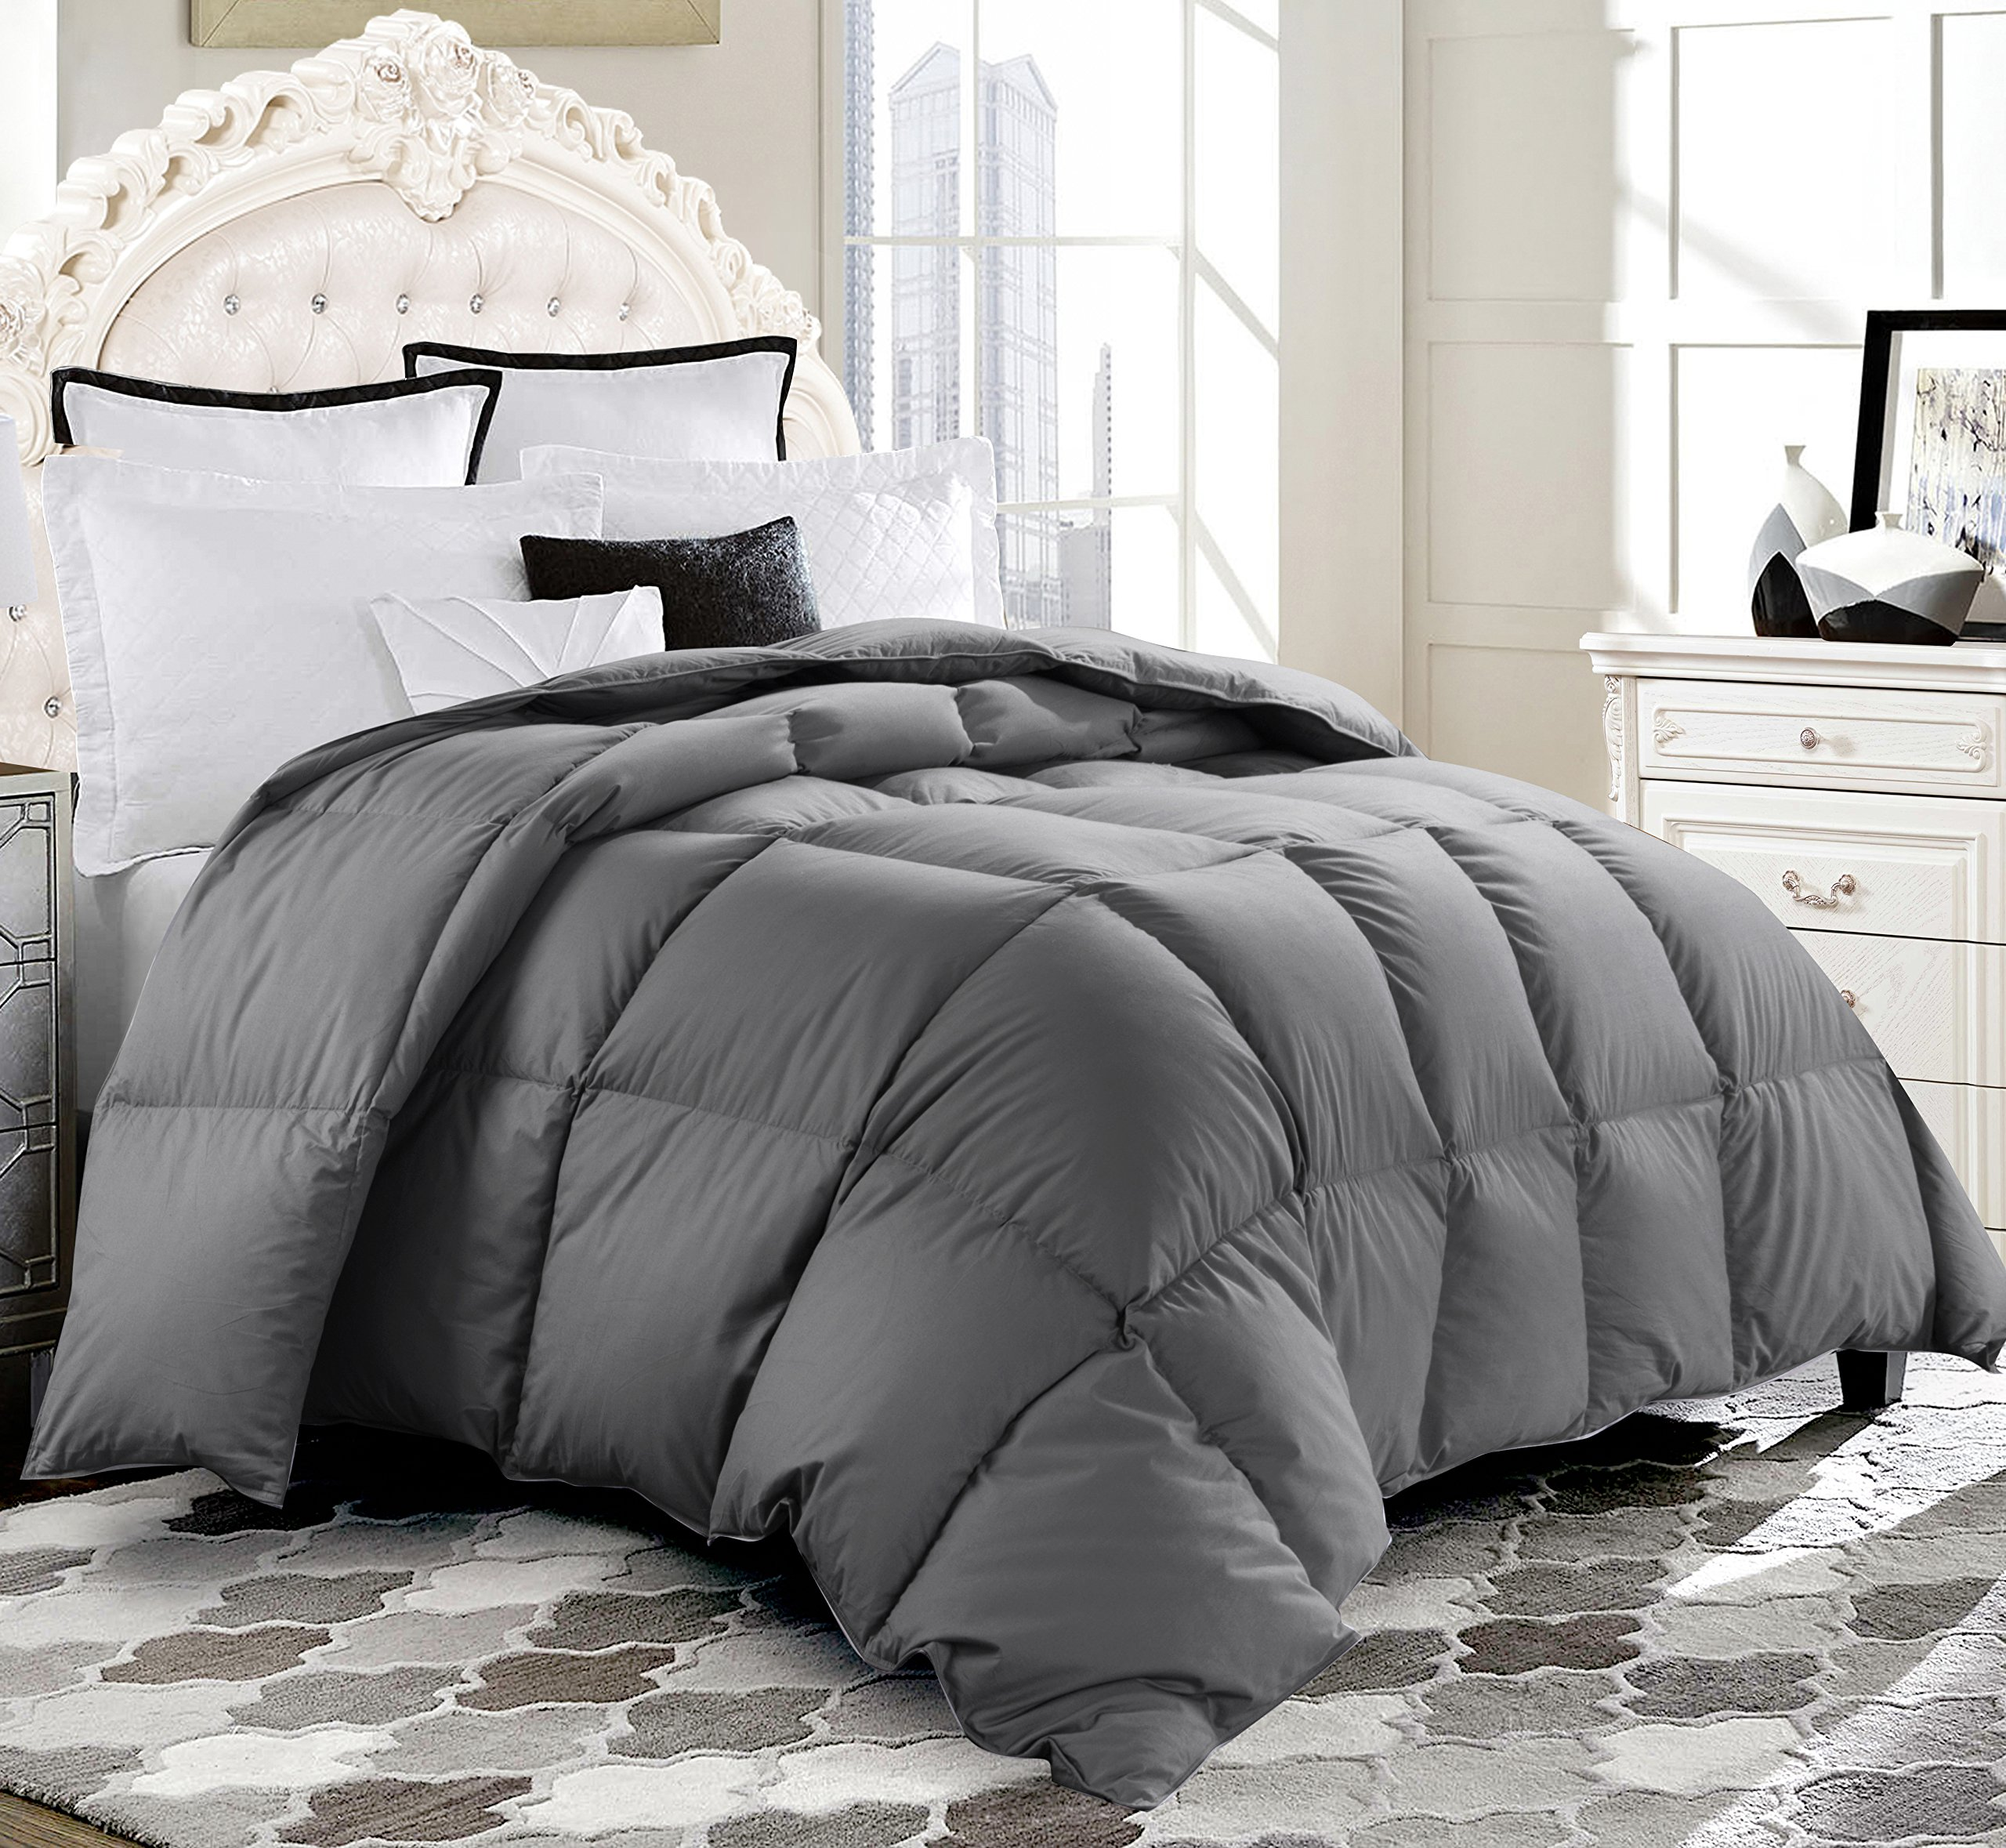 extrawarmth care insert down washing the tips comforter to guide prod coast ultimate nc bedding how king a clean duvet warmth blog image pacific extra